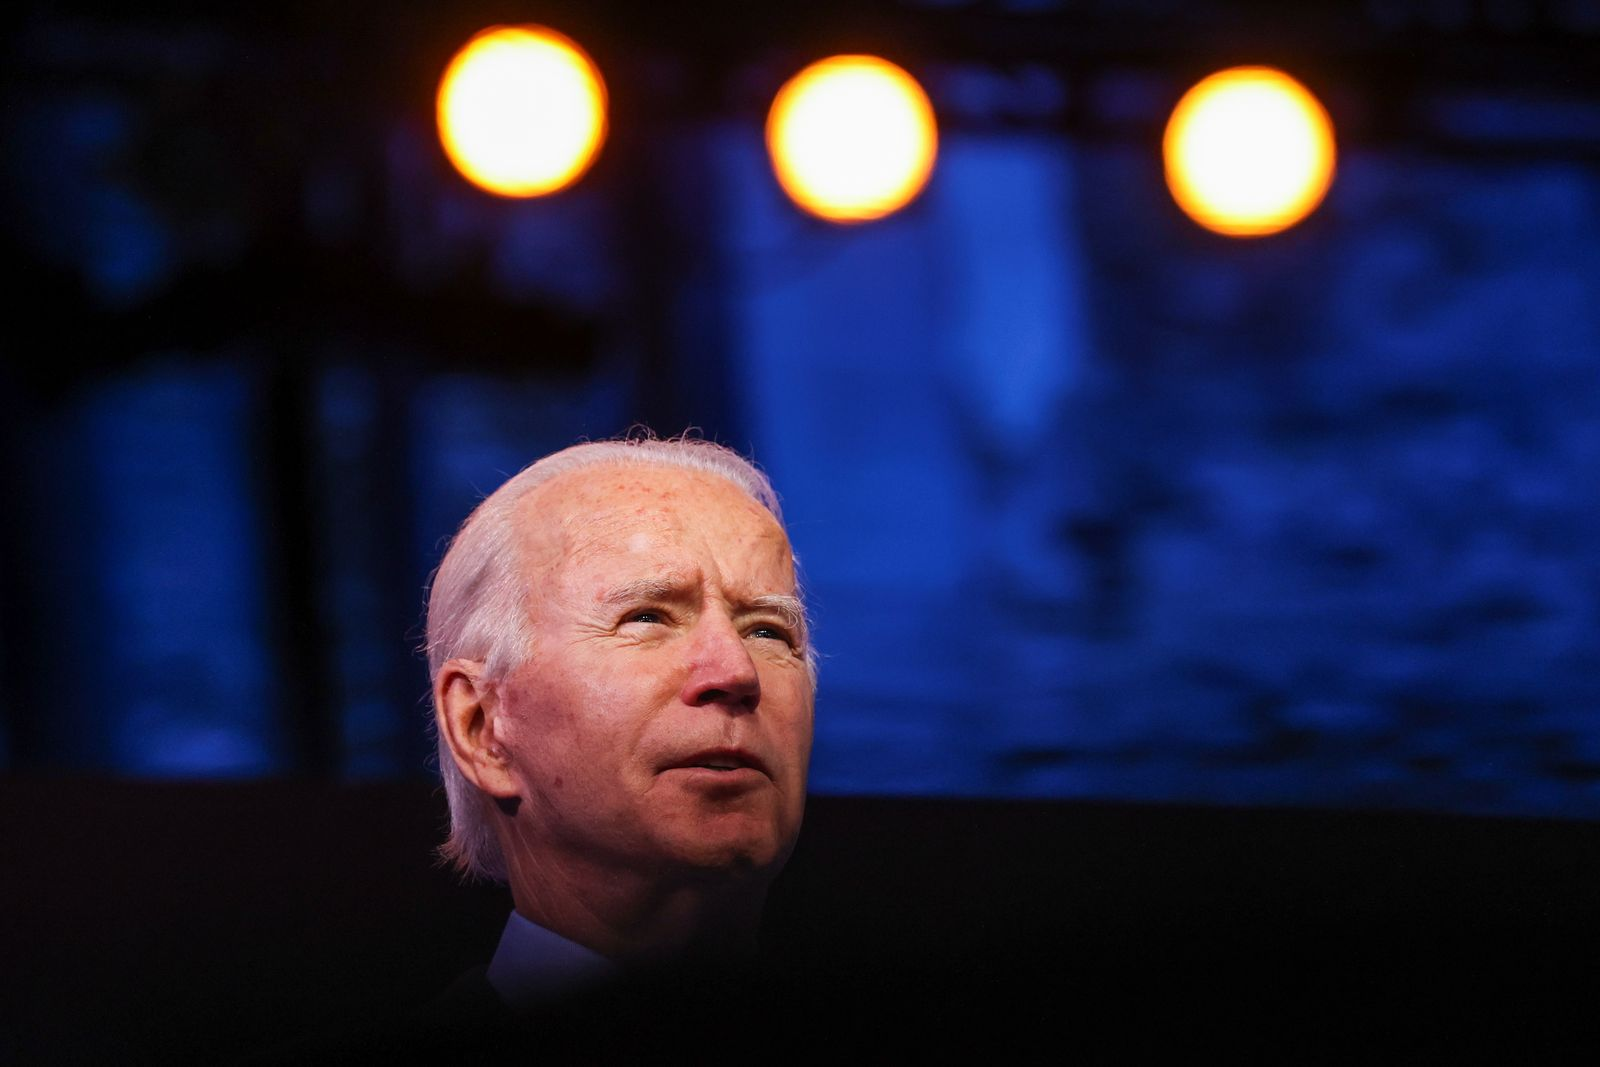 U.S. President-elect Joe Biden delivers a speech after a conference video call in Wilmington